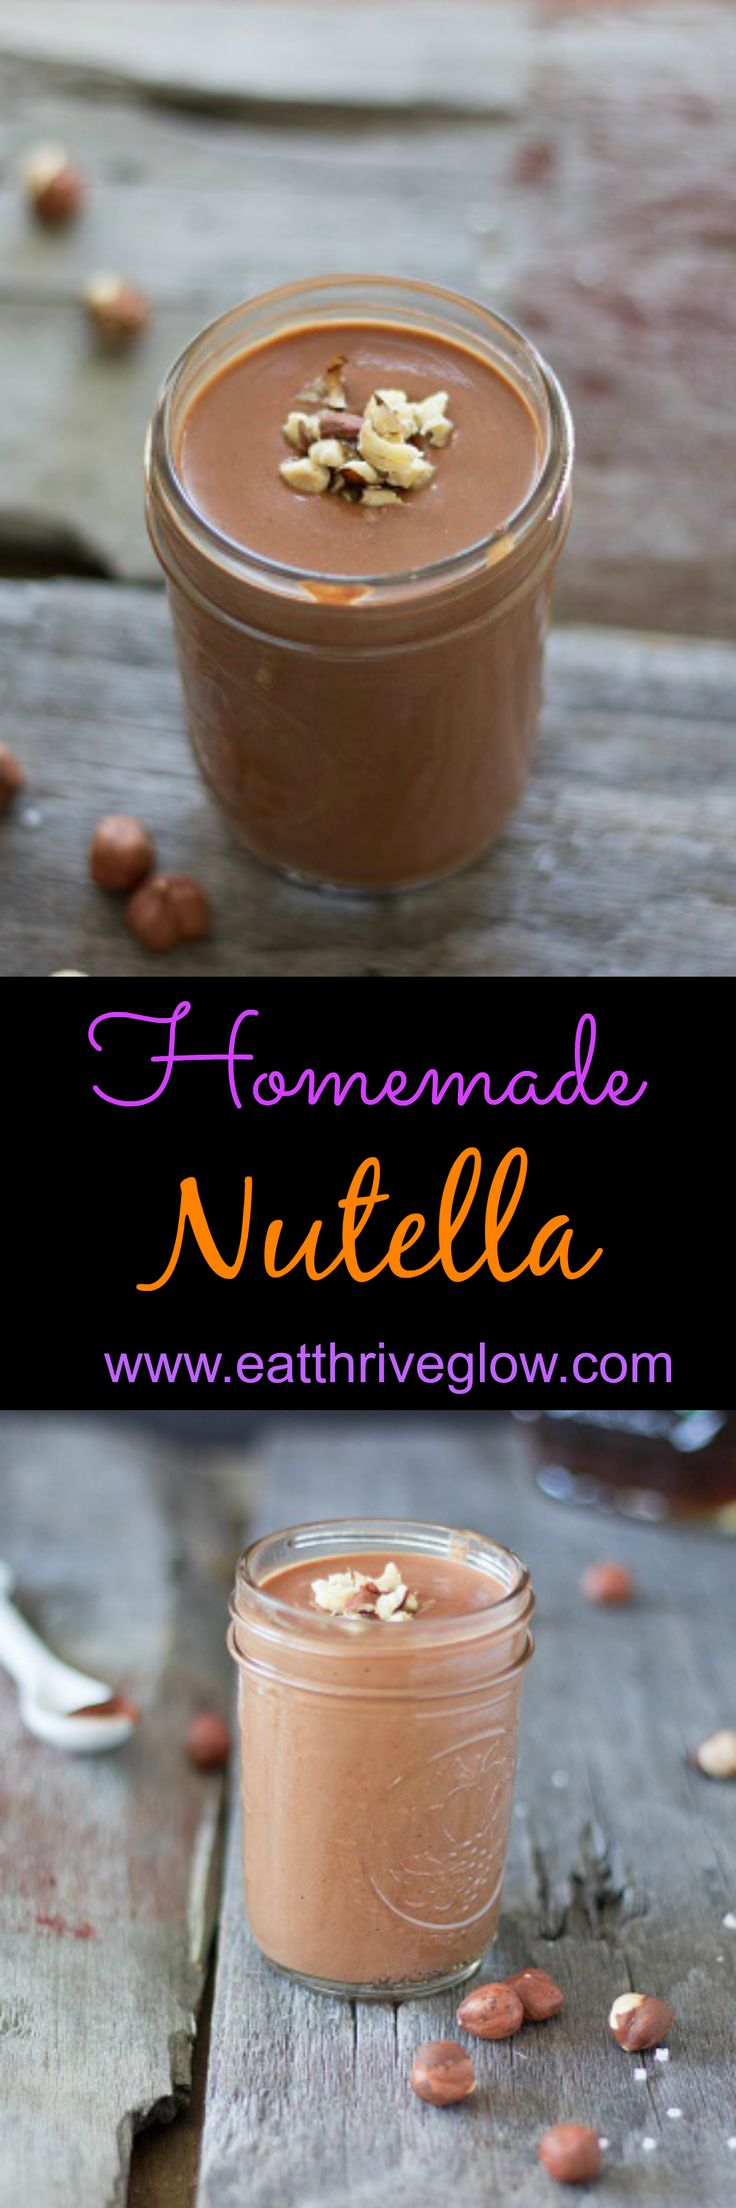 Easy, delicious, homemade vegan nutella recipe. Made with hazelnuts, raw cacao, coconut milk, maple syrup, and sea salt. Chocolate heaven!